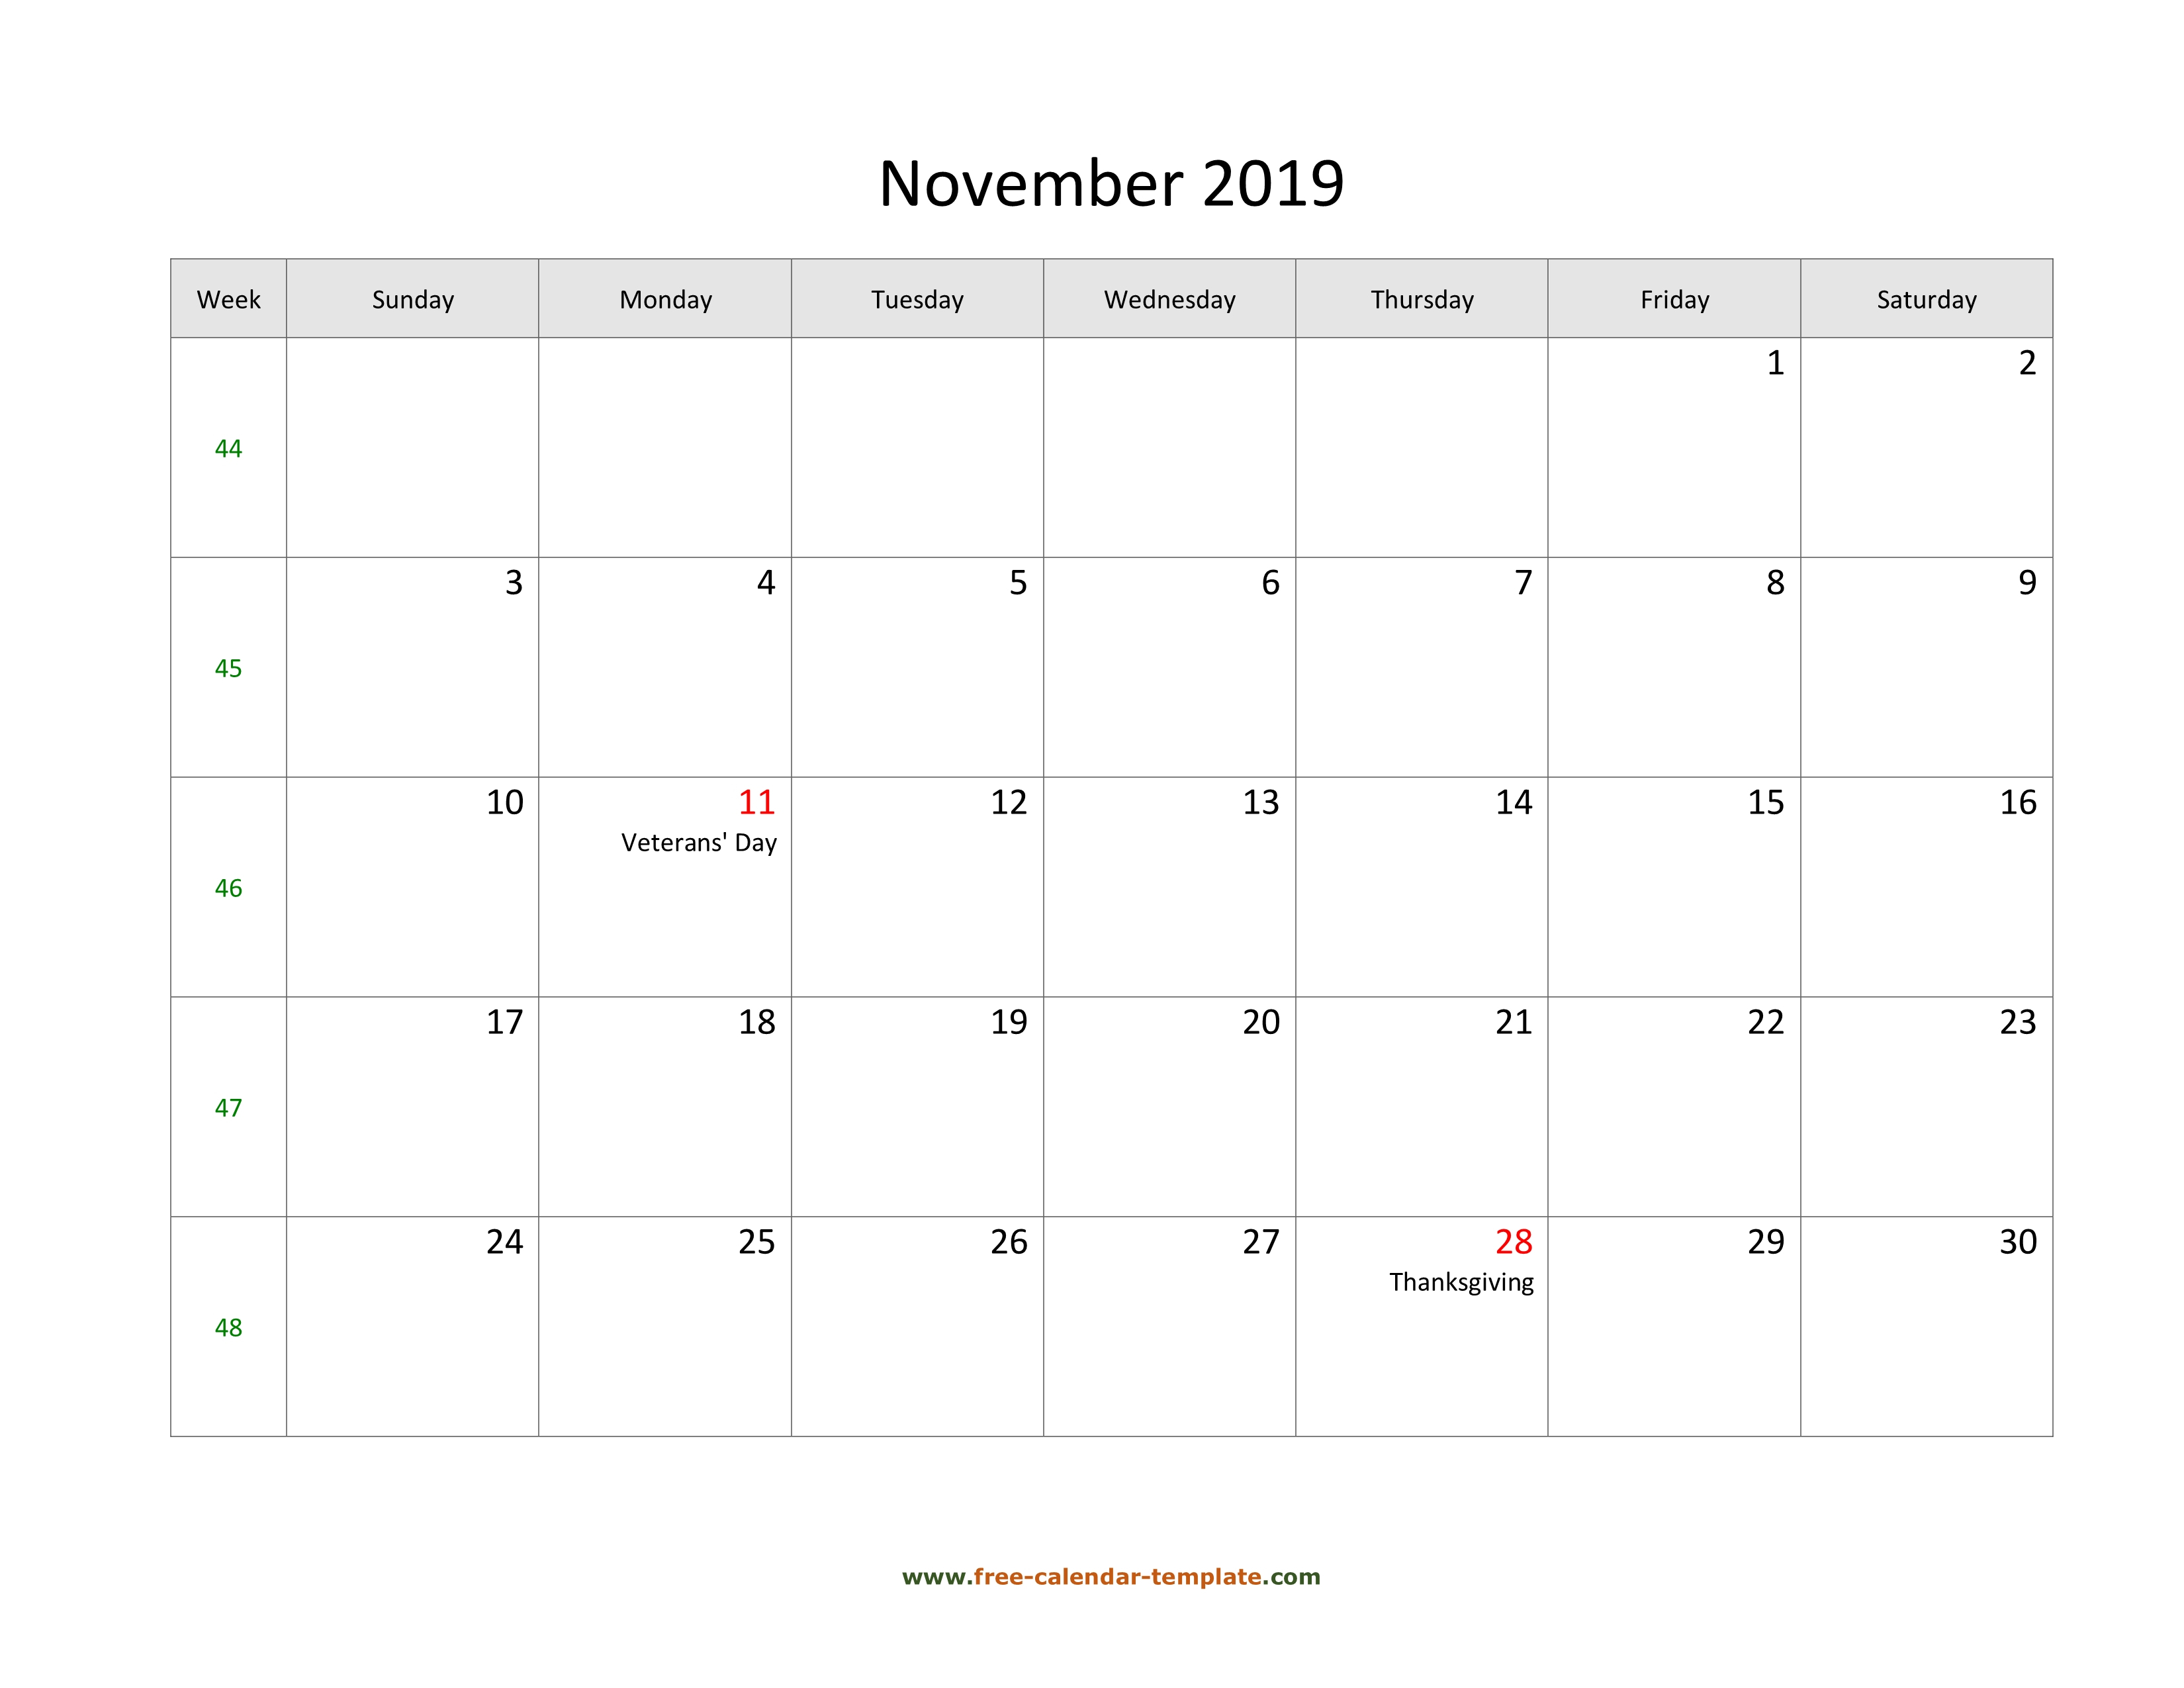 November 2019 Free Calendar Tempplate | Freecalendar with regard to Preschool Monthly Calendar Template